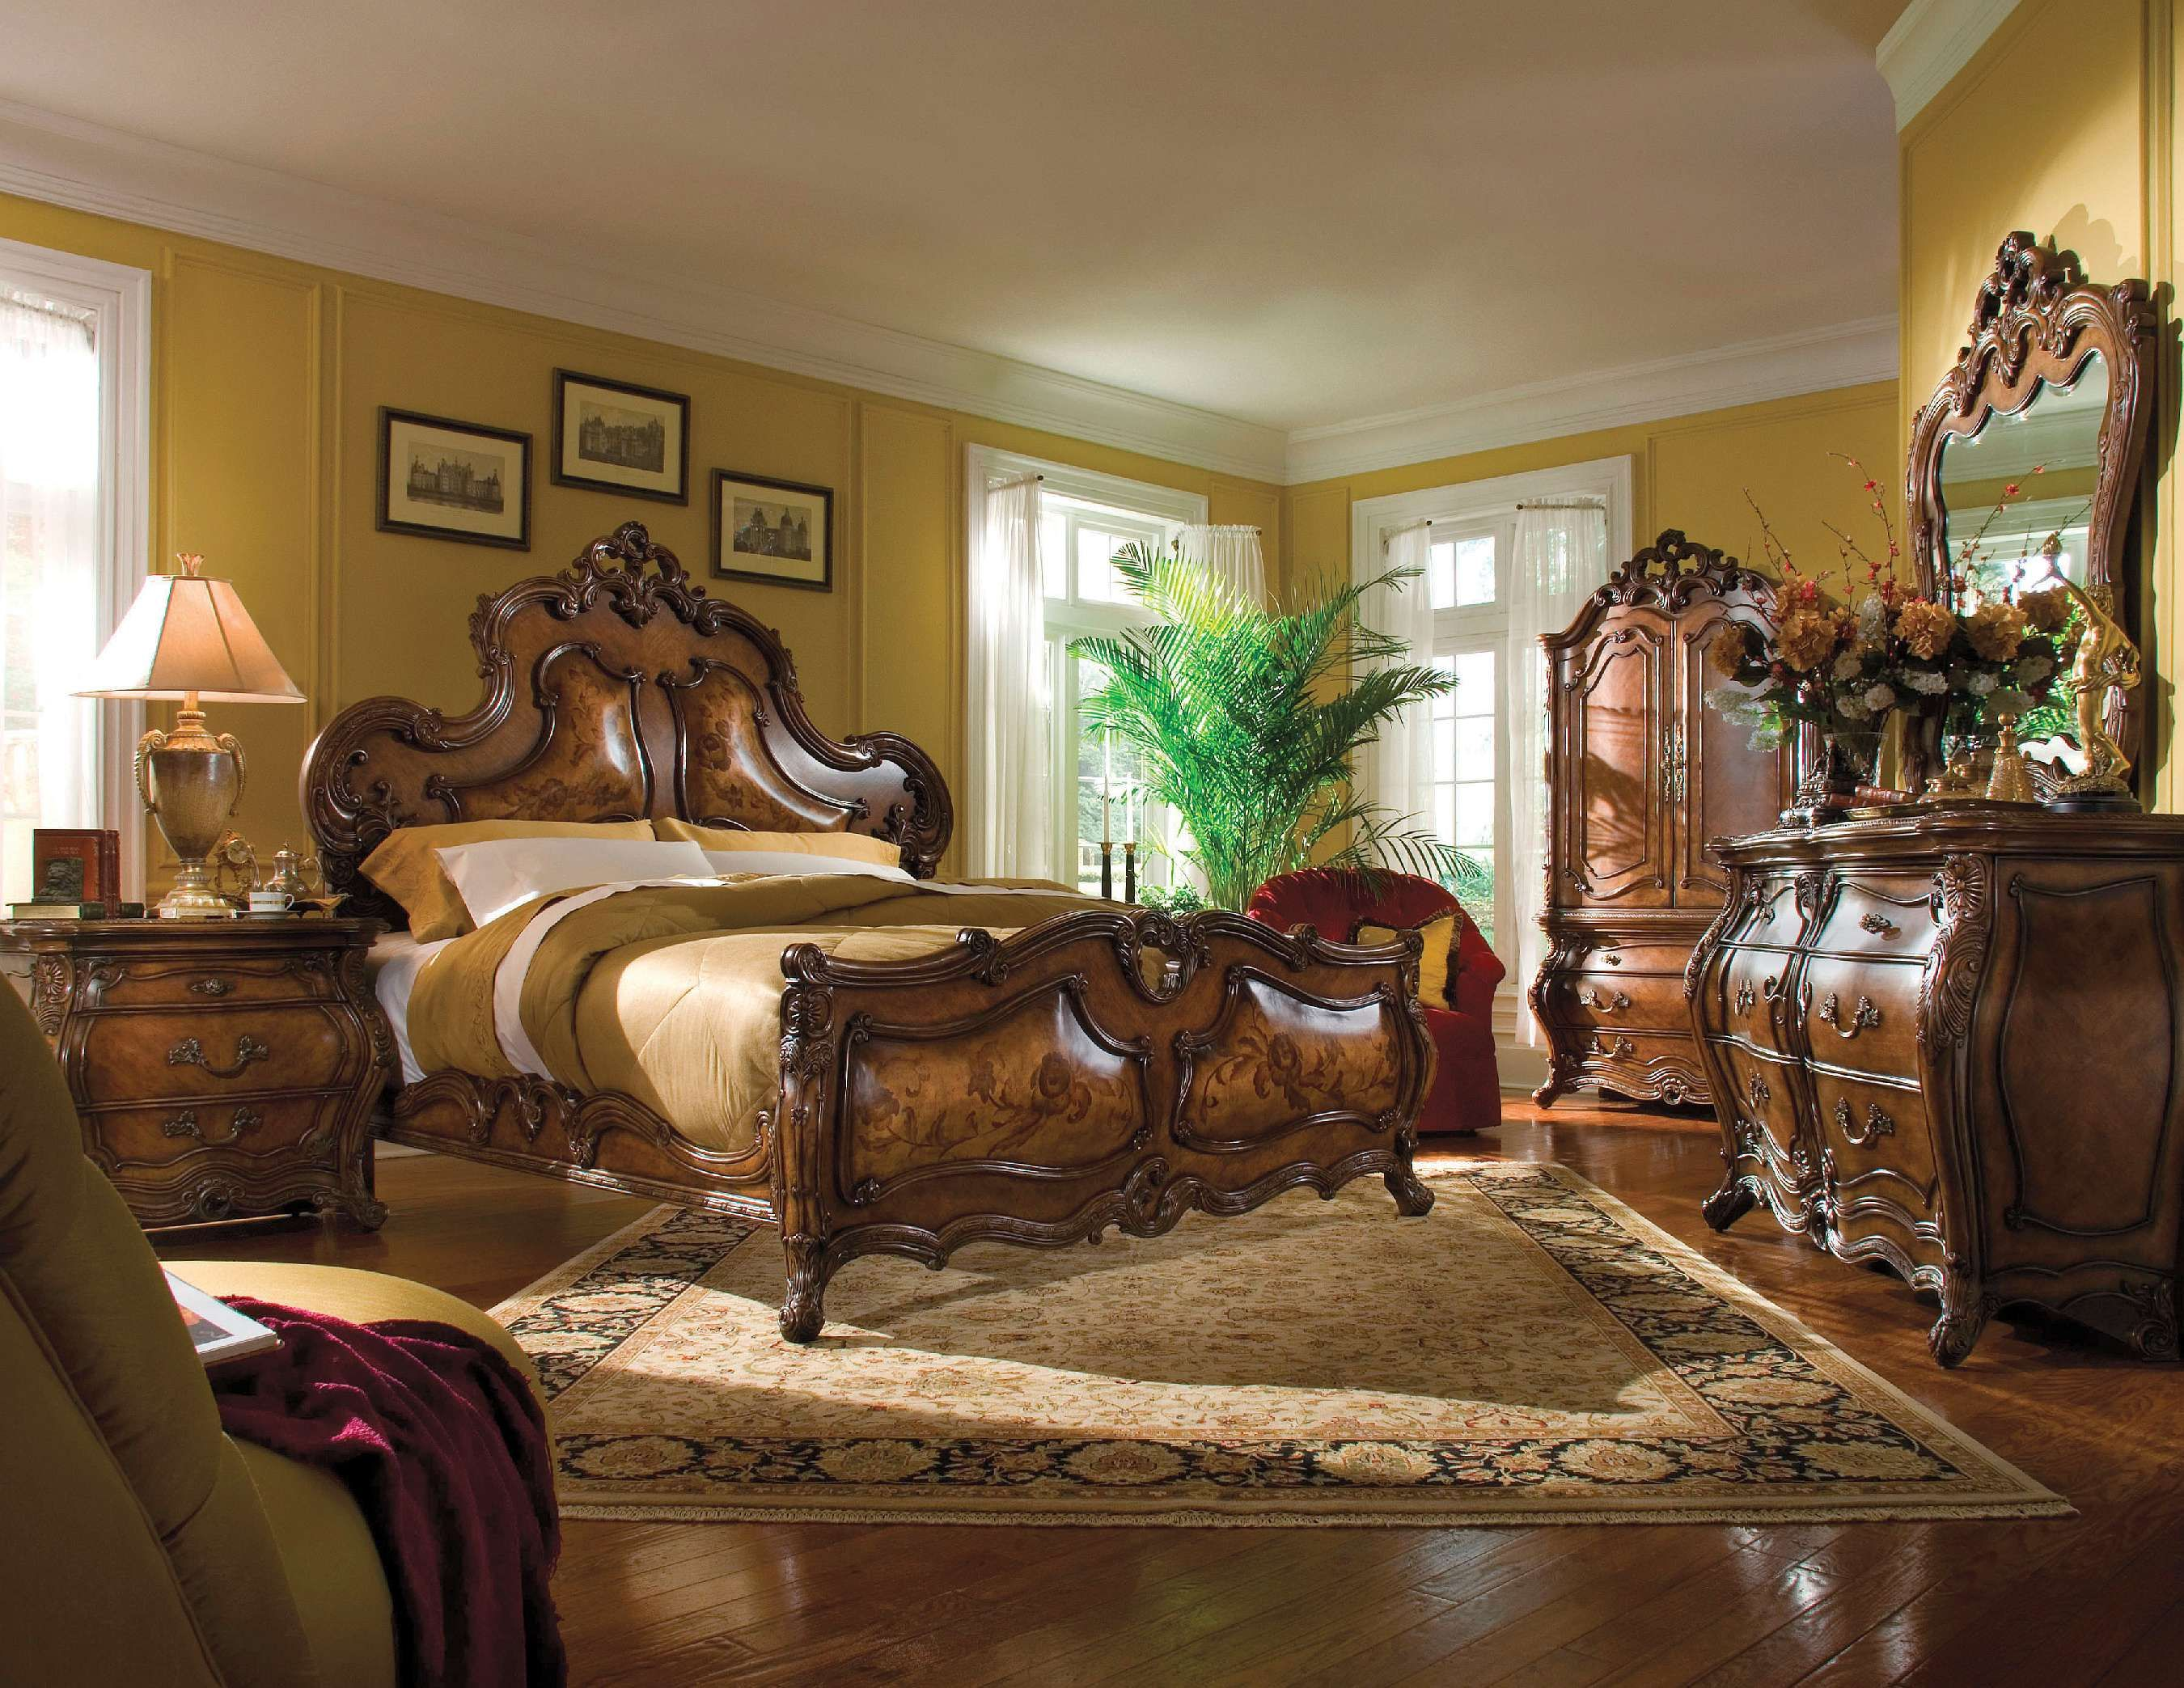 Nice Luxury Cal King Bed Set 23 In Small Home Decor Inspiration Delectable Cal King Bedroom Sets Review